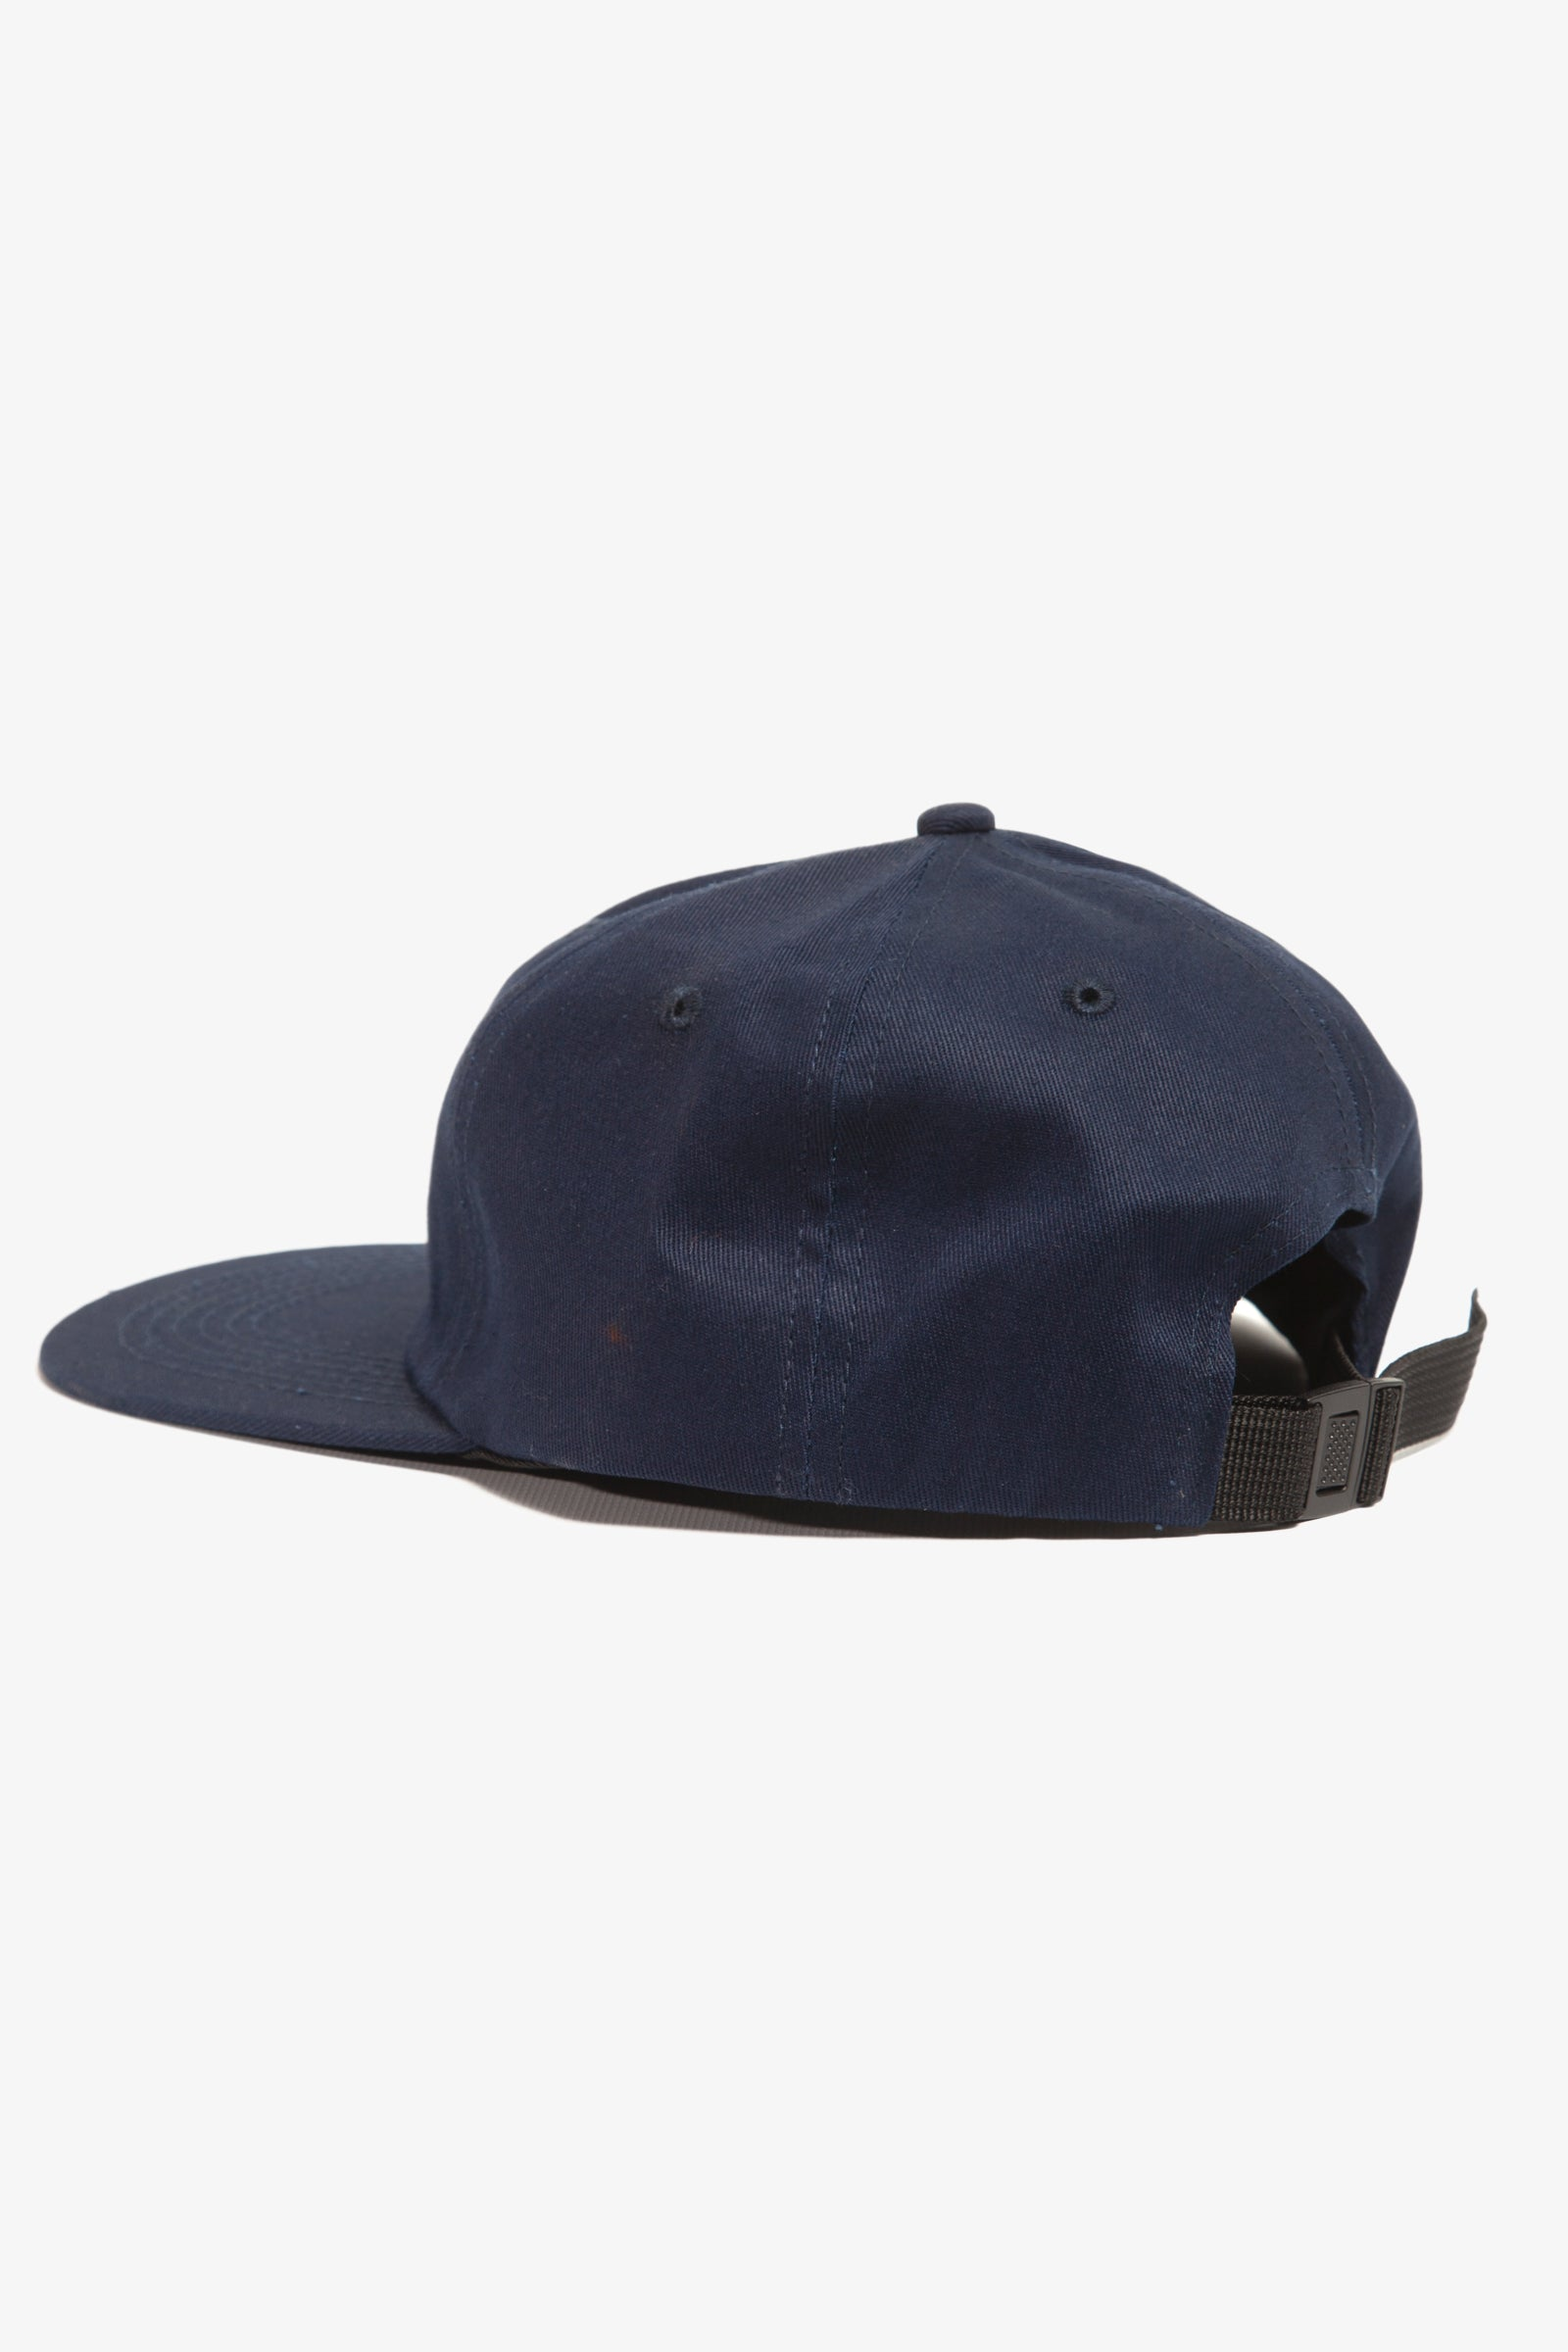 Power House - Perfect 6-Panel Cap - Navy Blue